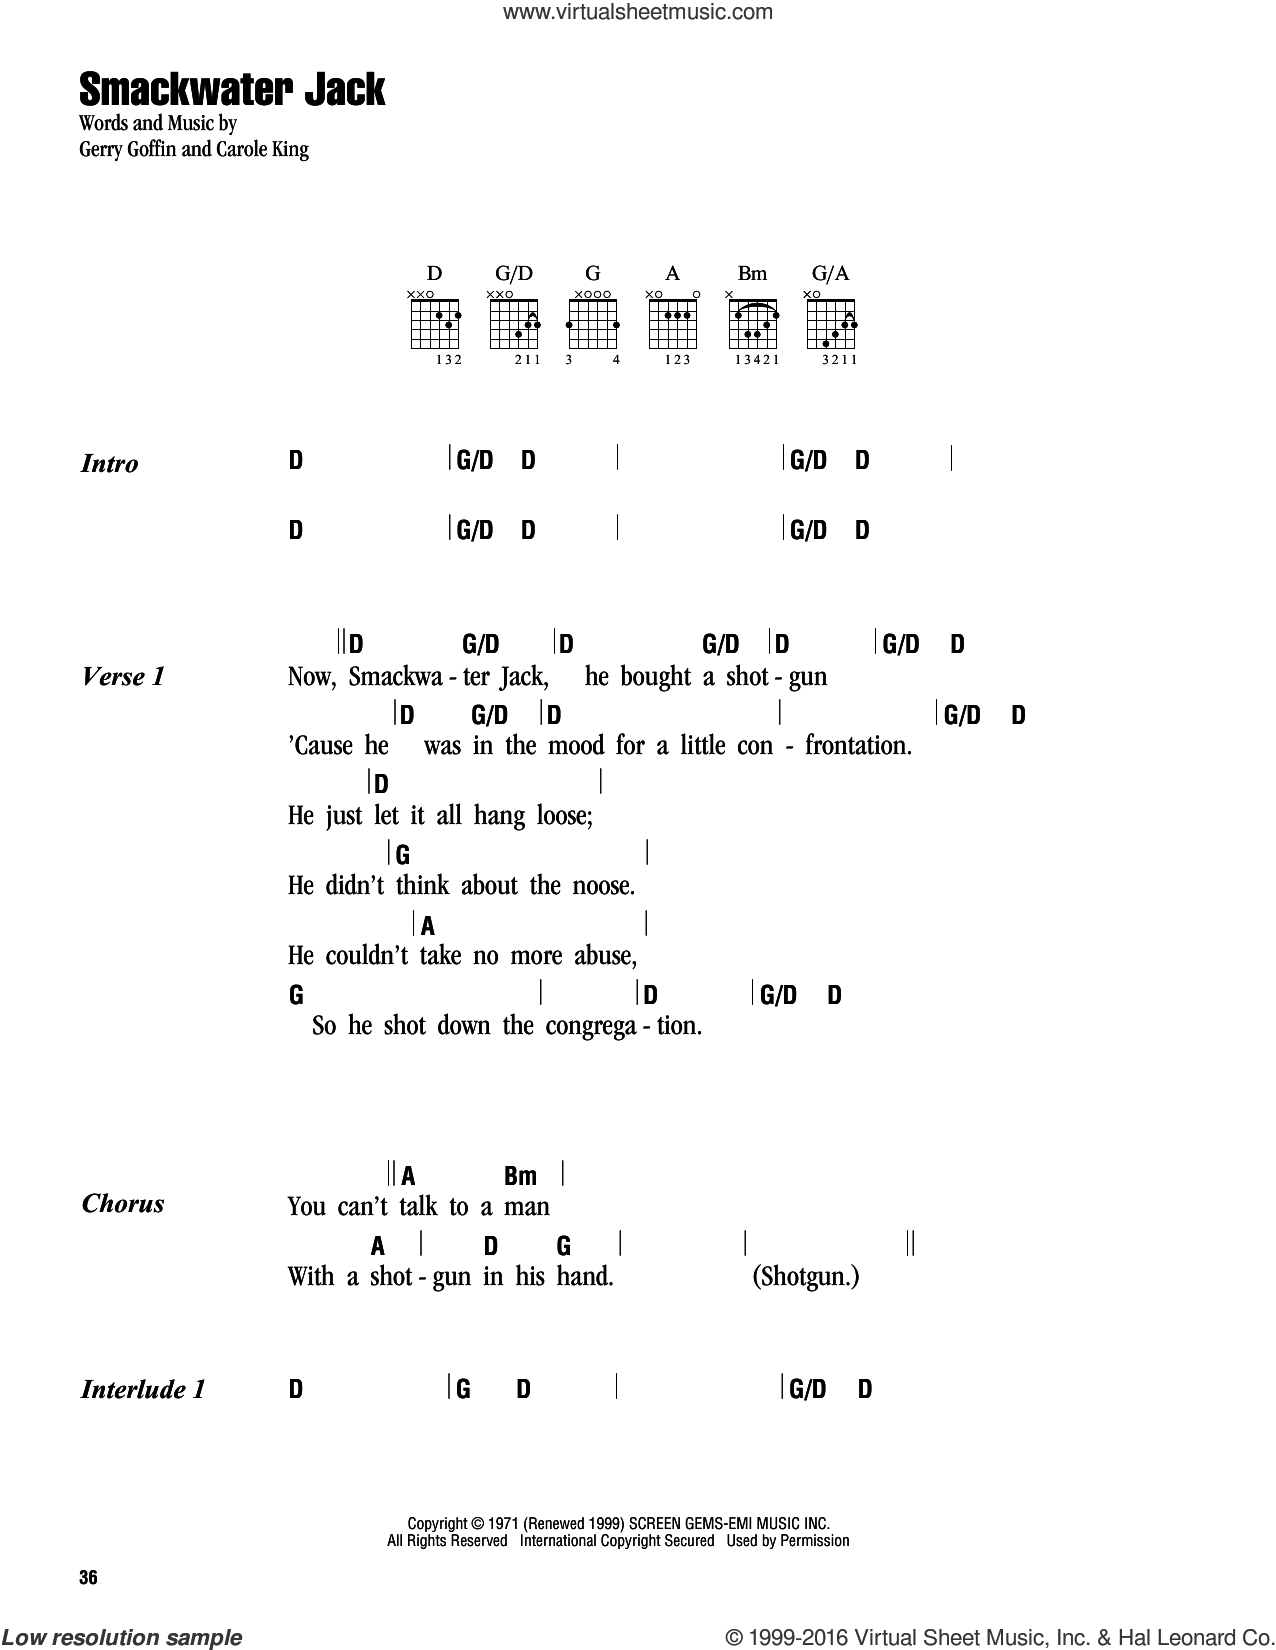 Smackwater Jack sheet music for guitar (chords) by Carole King and Gerry Goffin, intermediate